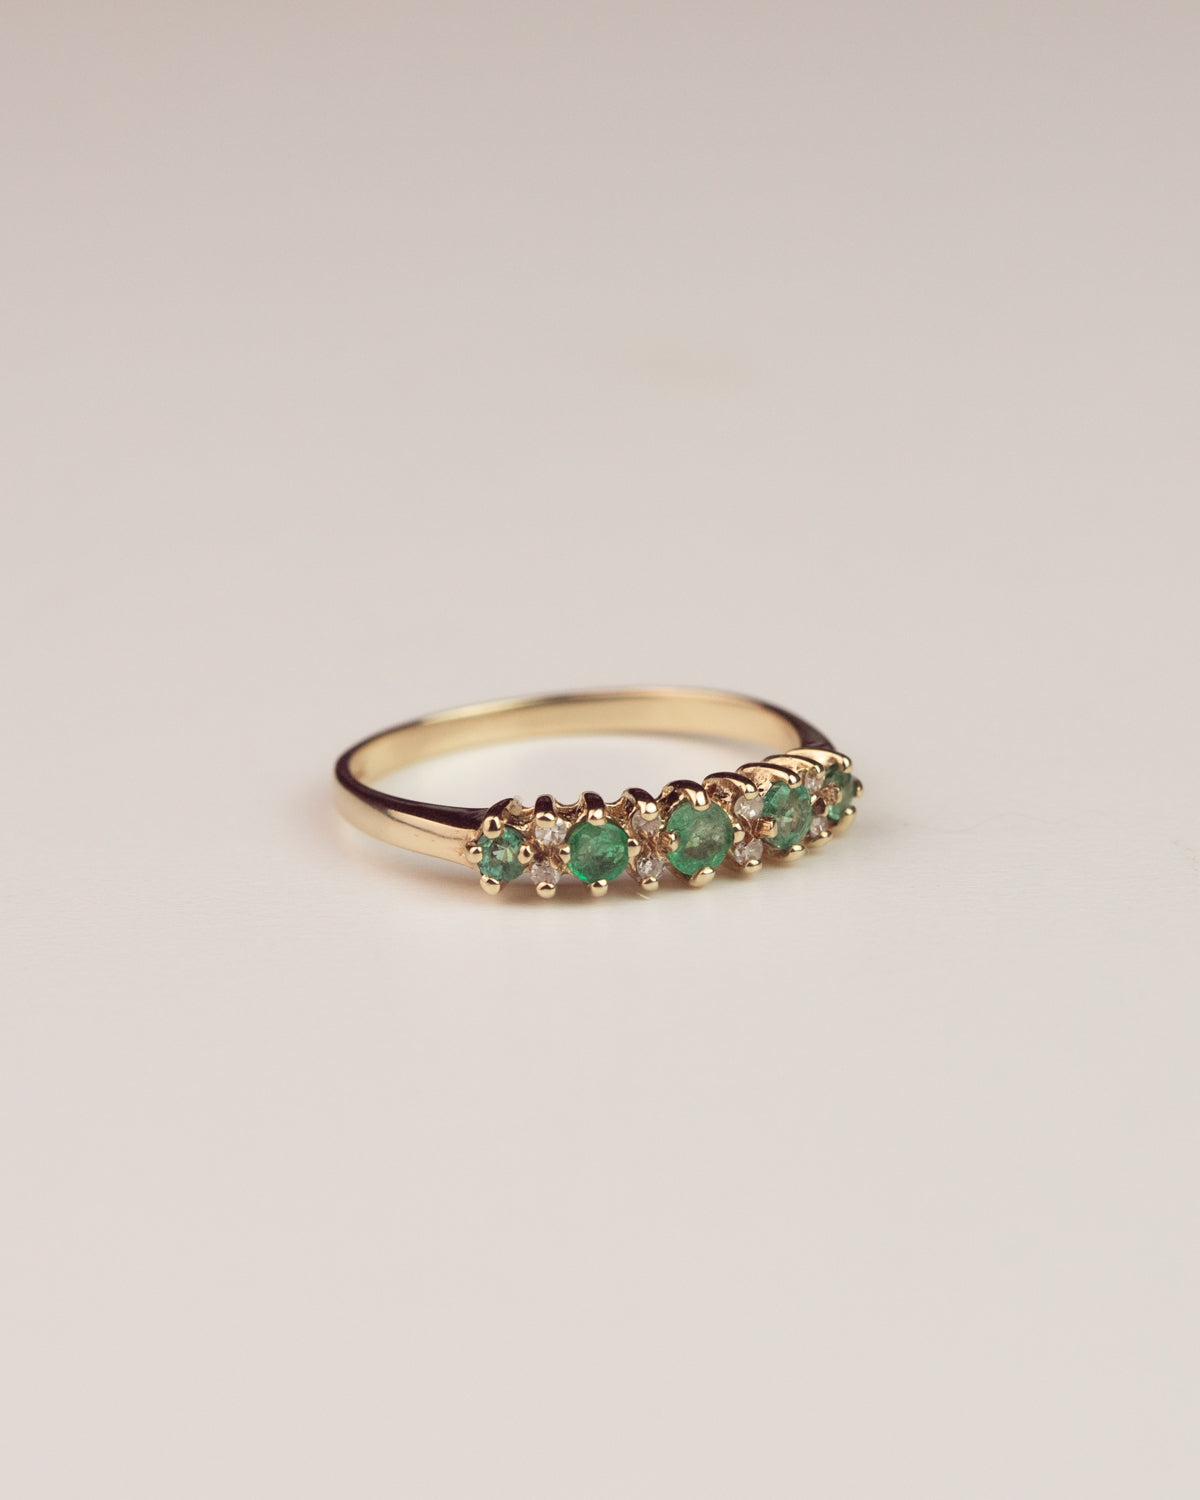 Image of Willow Exclusive Vintage 9ct Gold Emerald and Diamond Ring